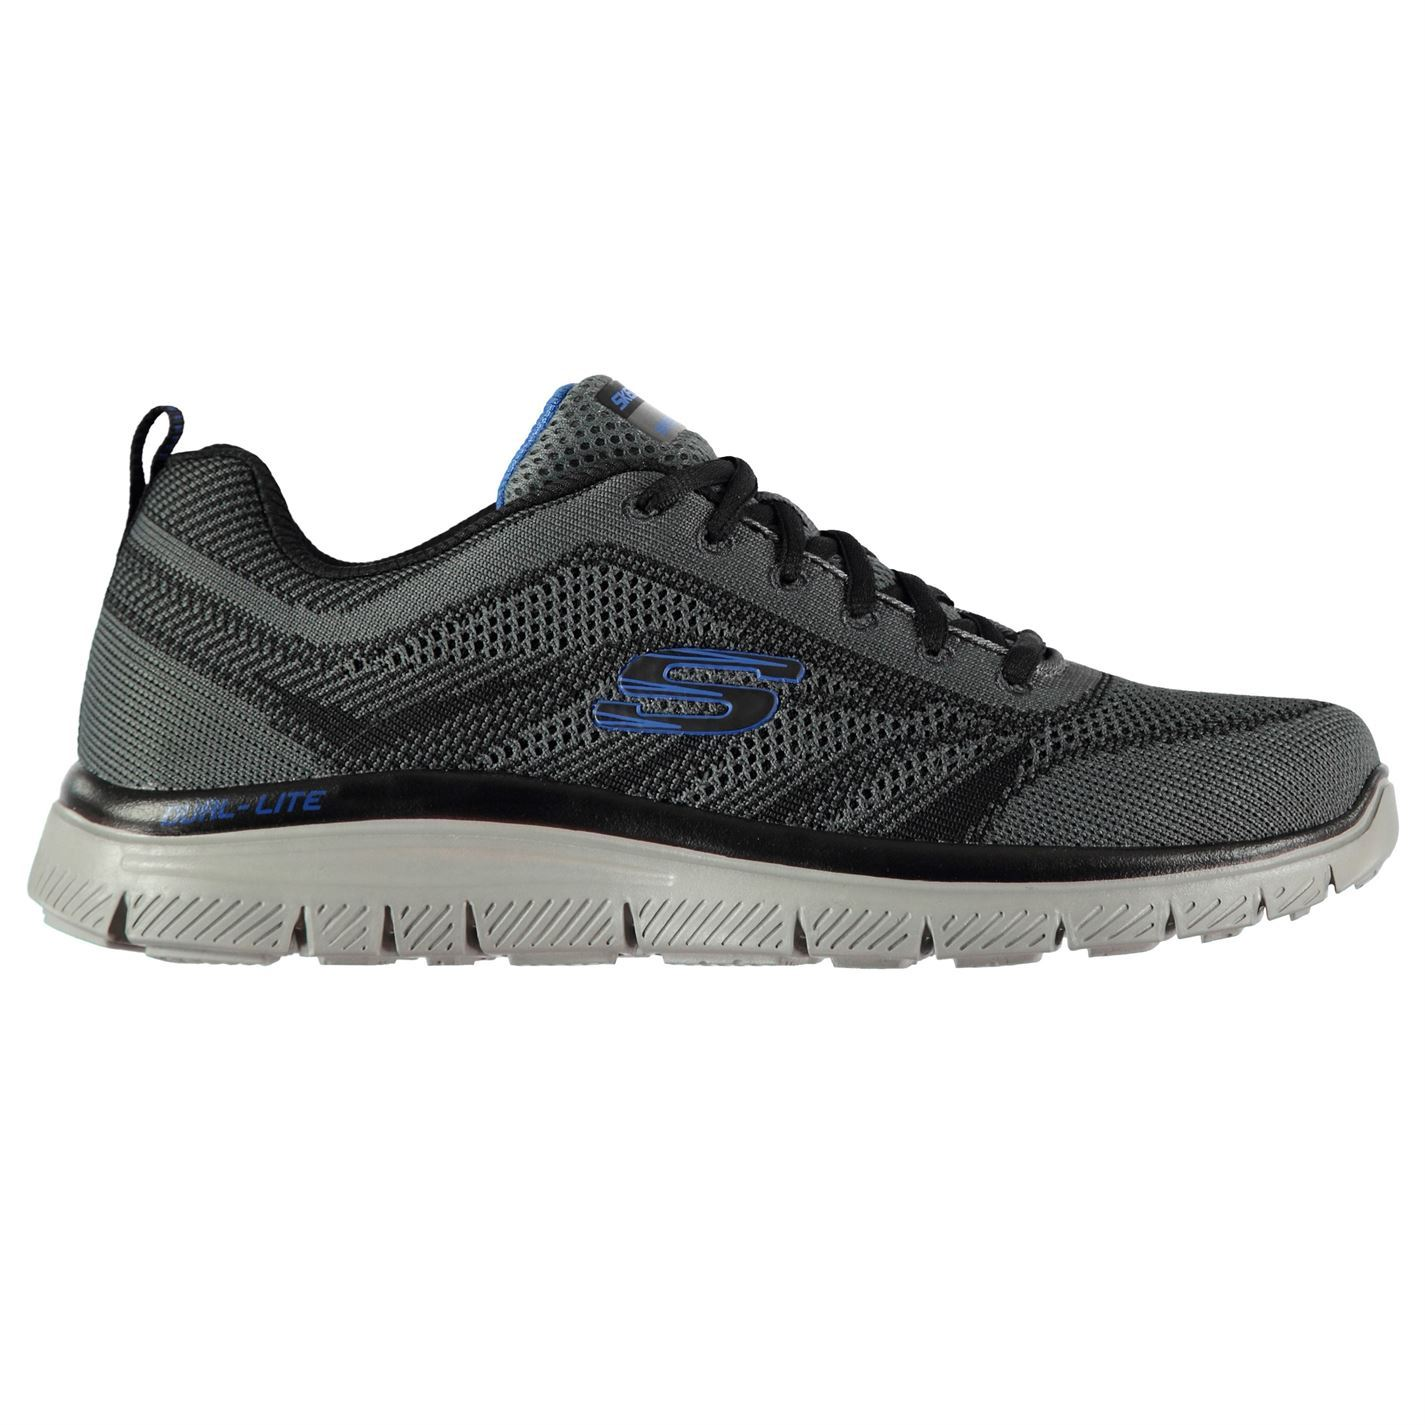 Skechers  Uomo Memory Foam Up Knit Schuhes Runners Lace Up Foam Cushioned Ankle Collar 41089e